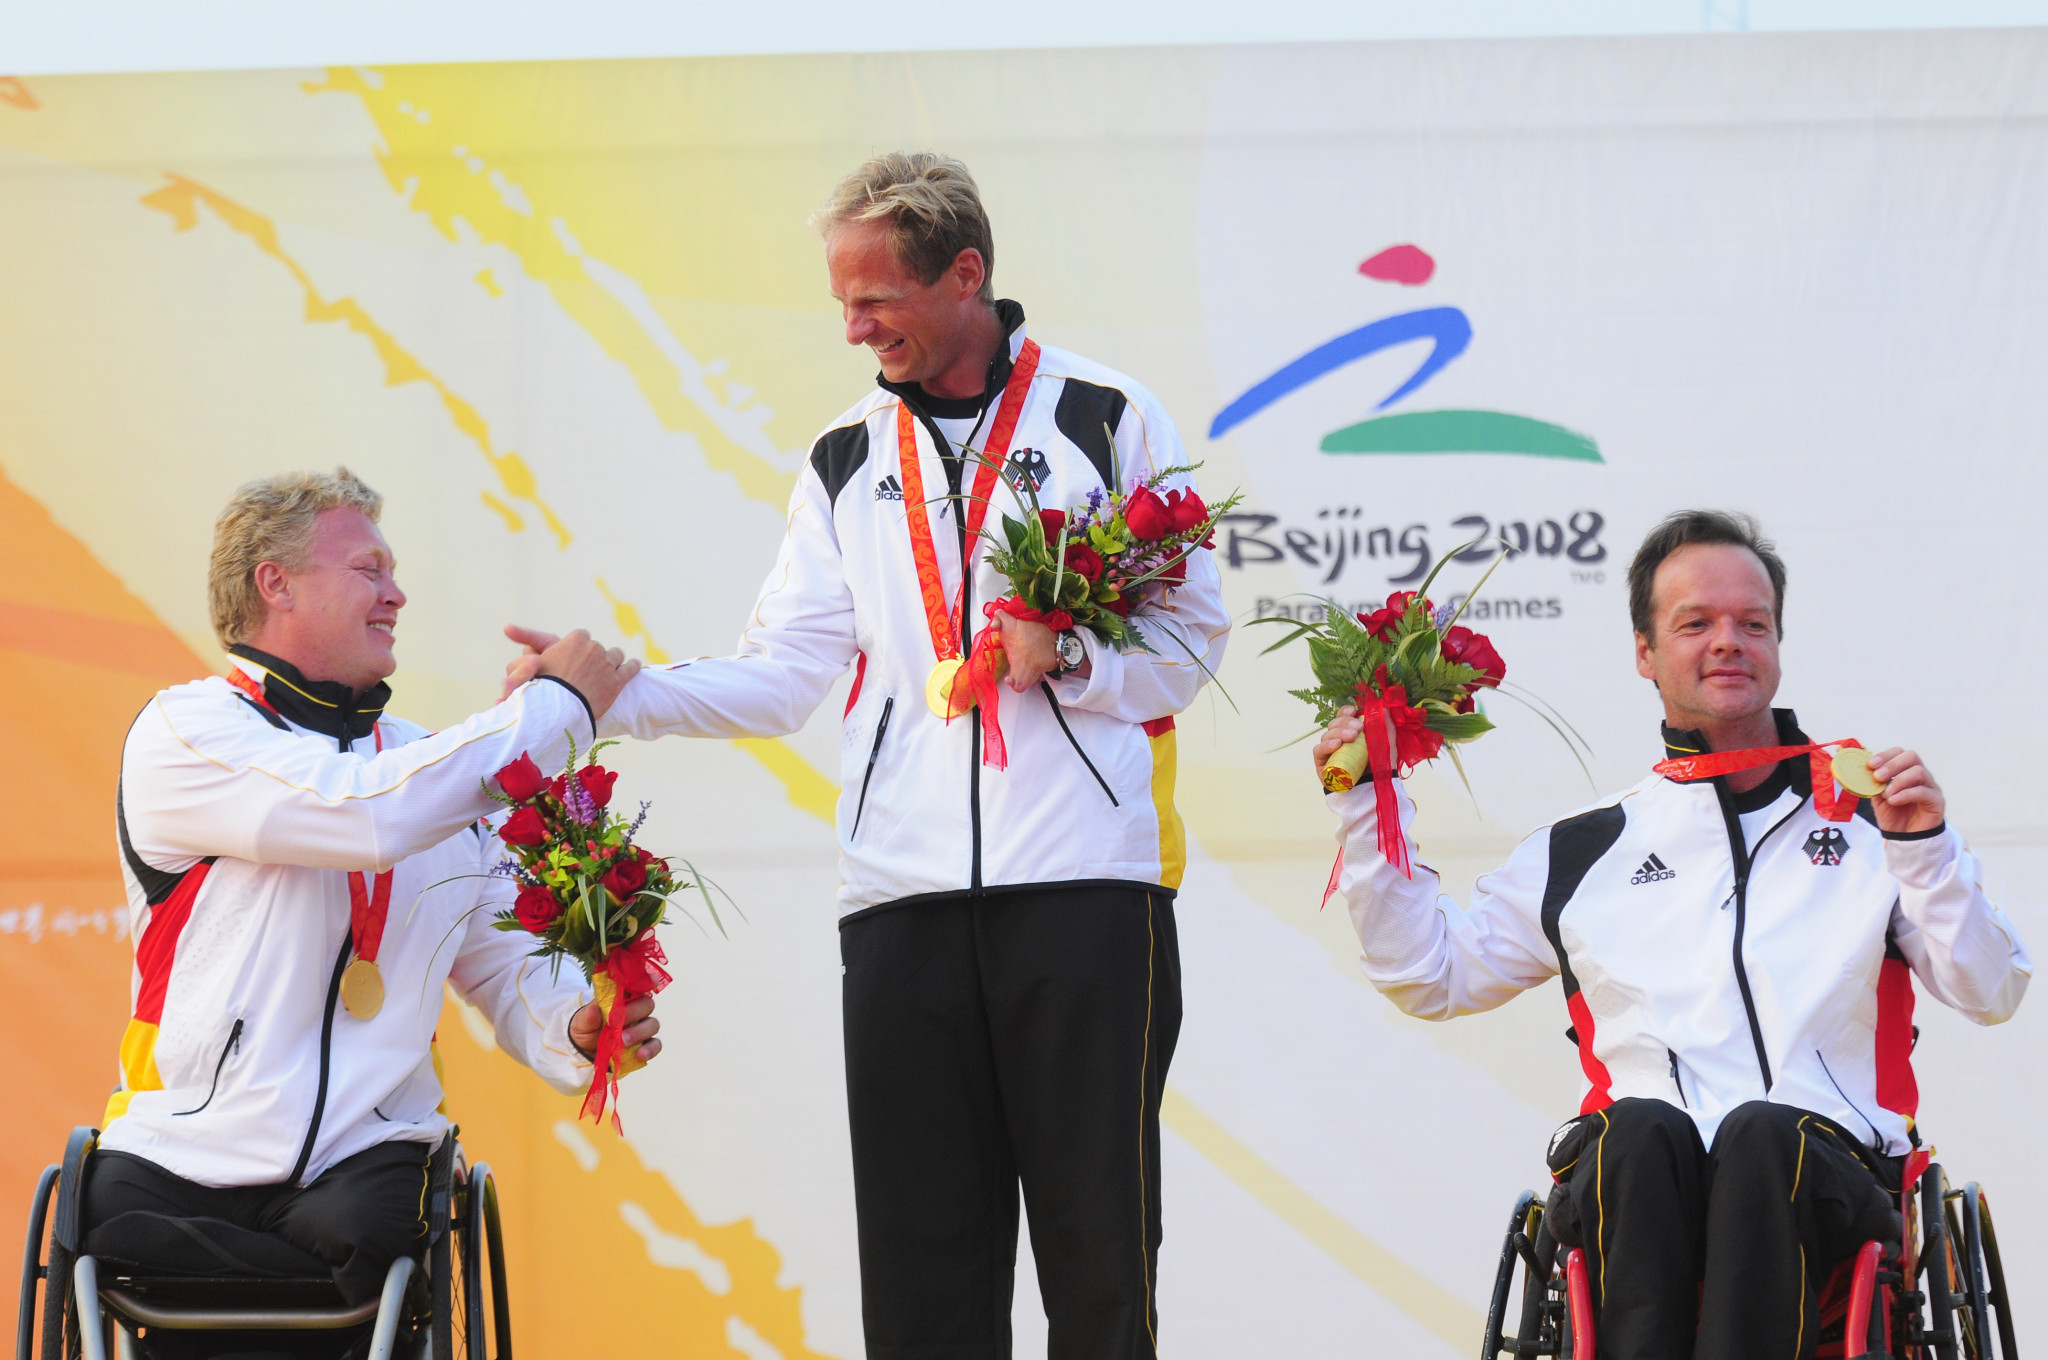 Jens Kroker, centre, won three Paralympic medals including gold in Beijing ©Getty Images